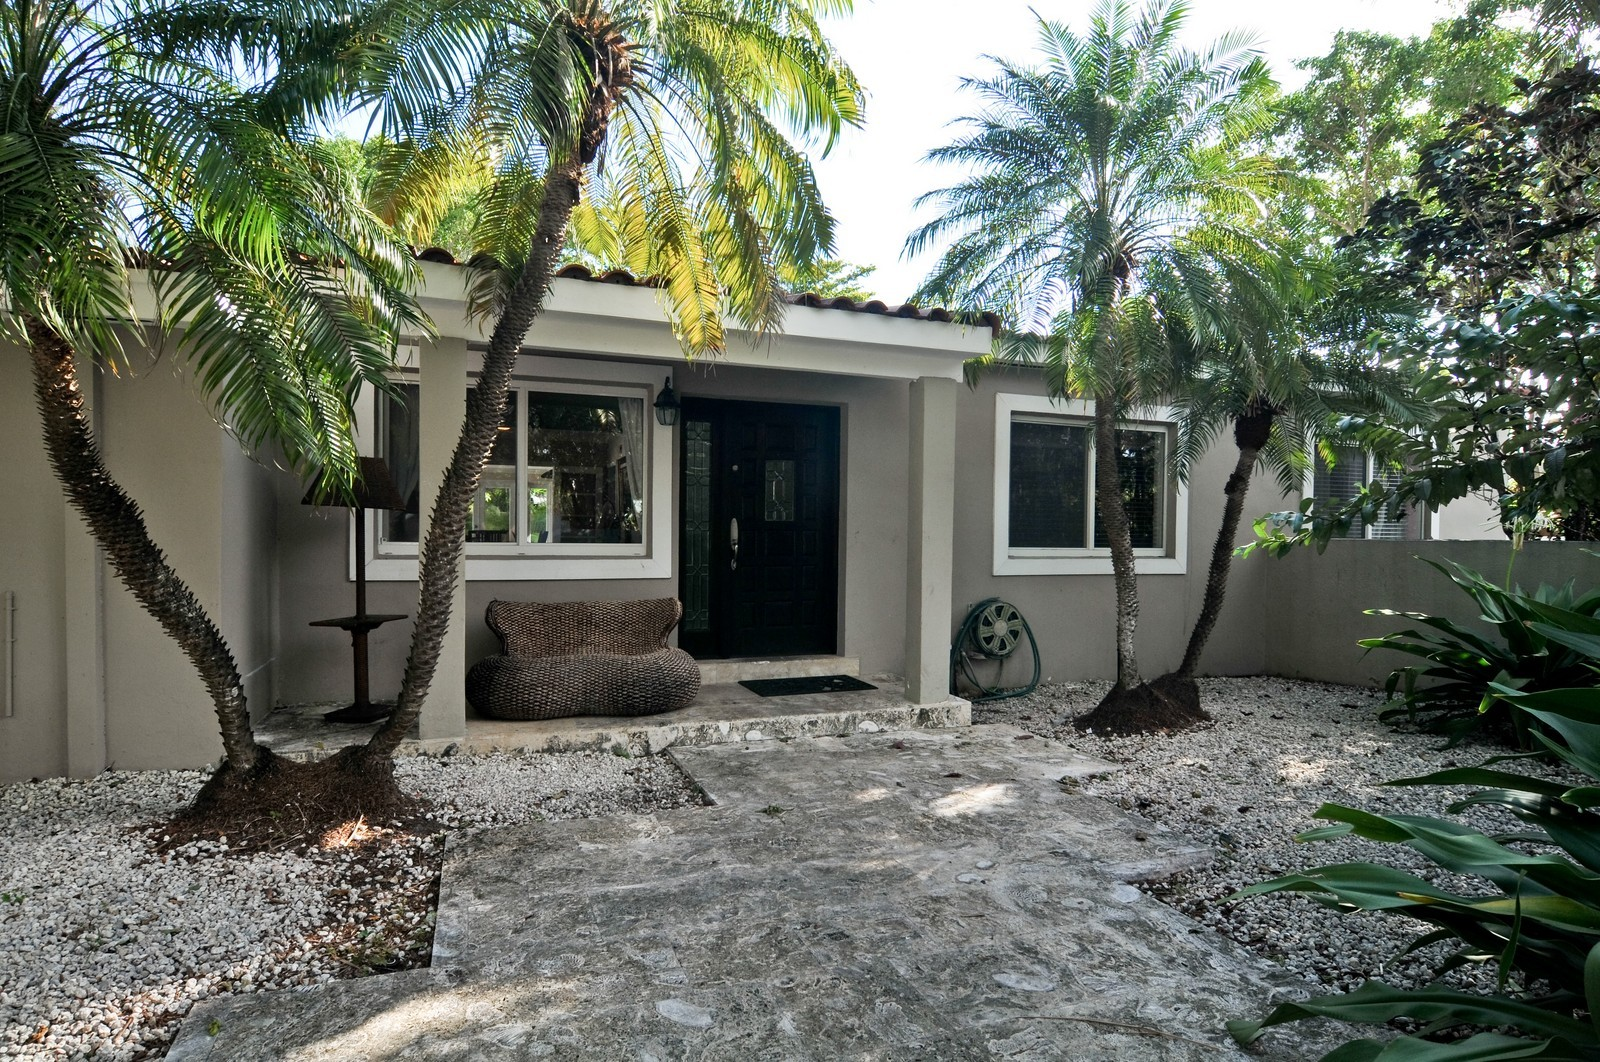 Real Estate Photography - 285 Glenrigde Rd, Key Biscayne, FL, 33149 - Entryway